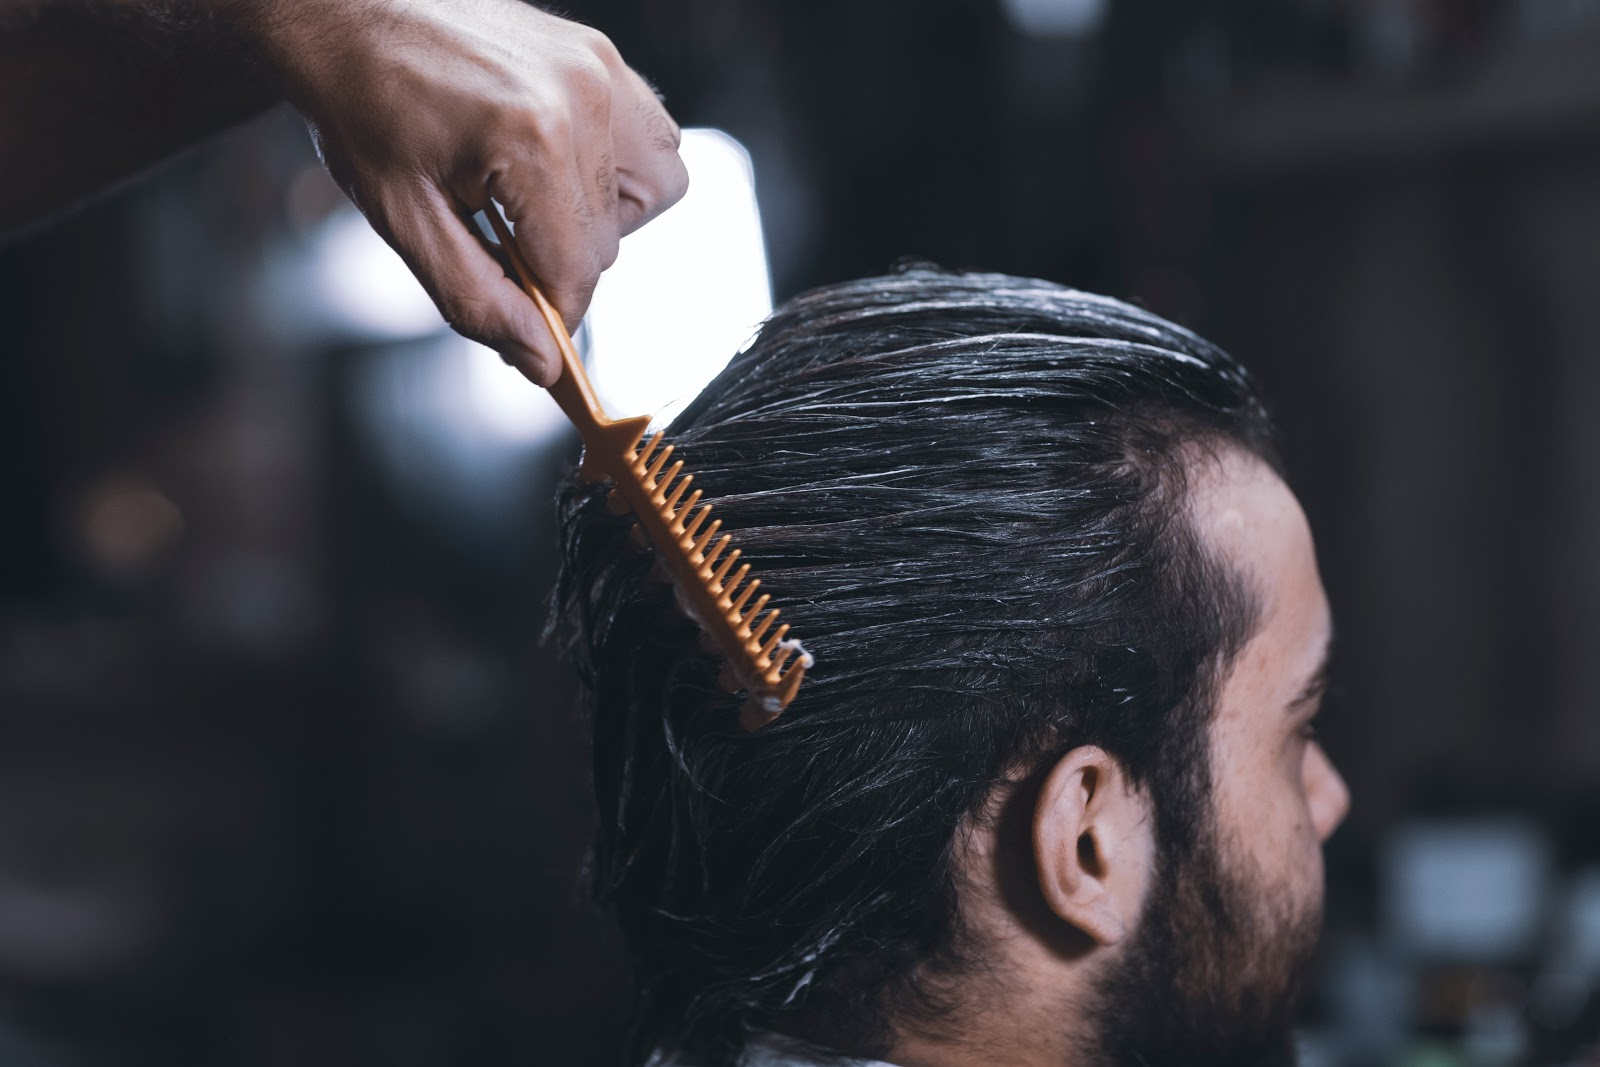 Man getting hair combed